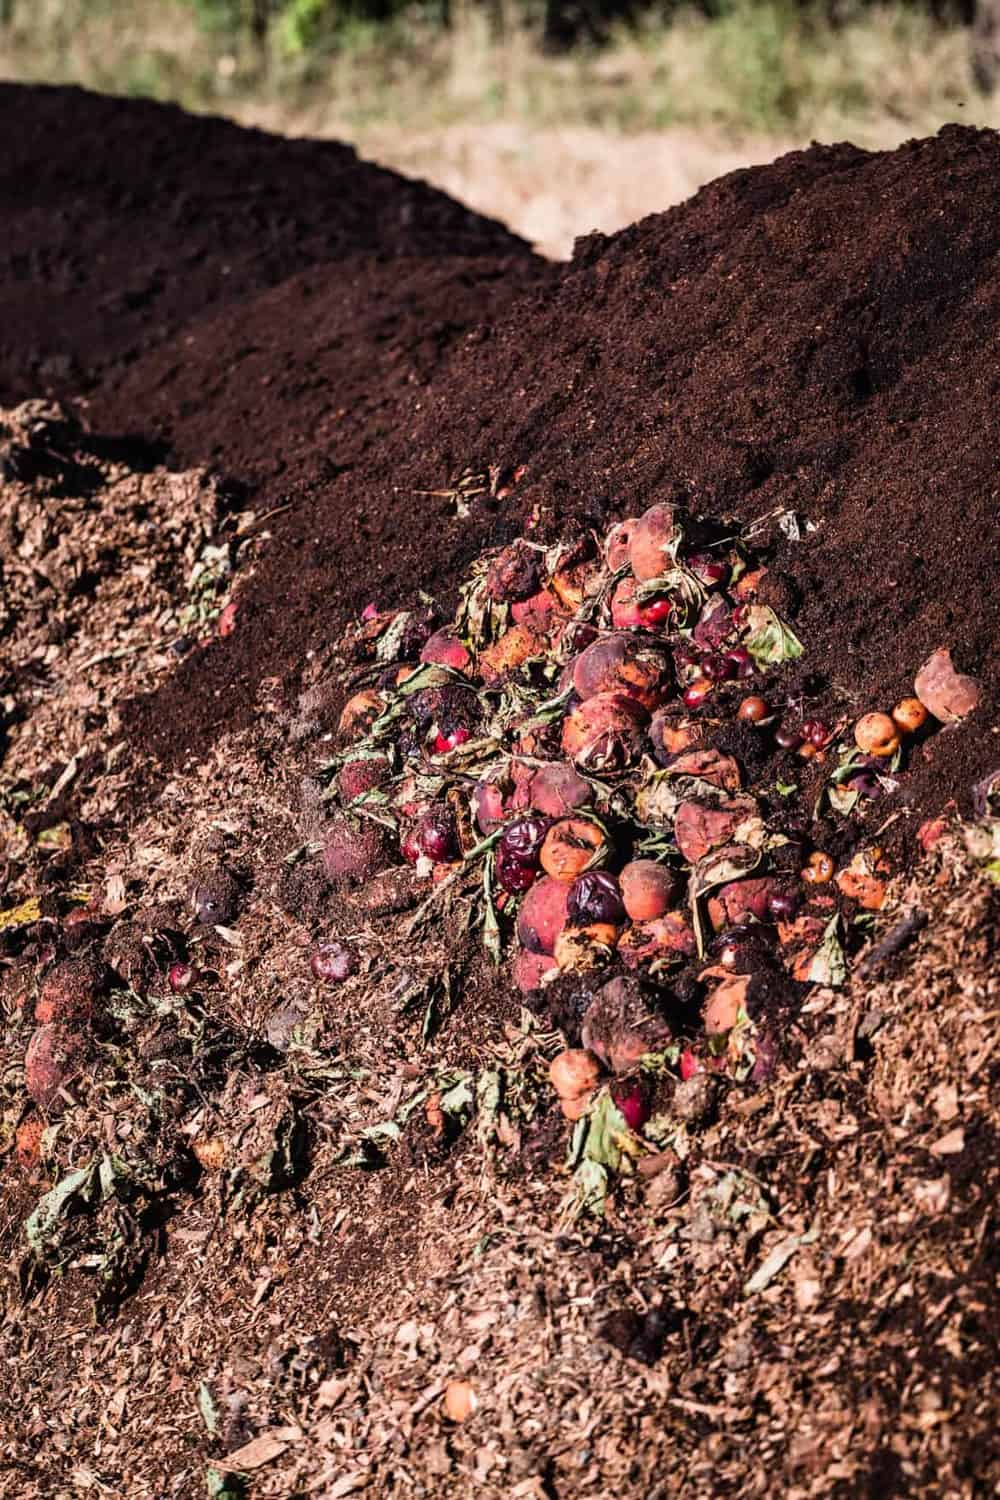 Frog Hollow Farms compost pile of organic fruit.